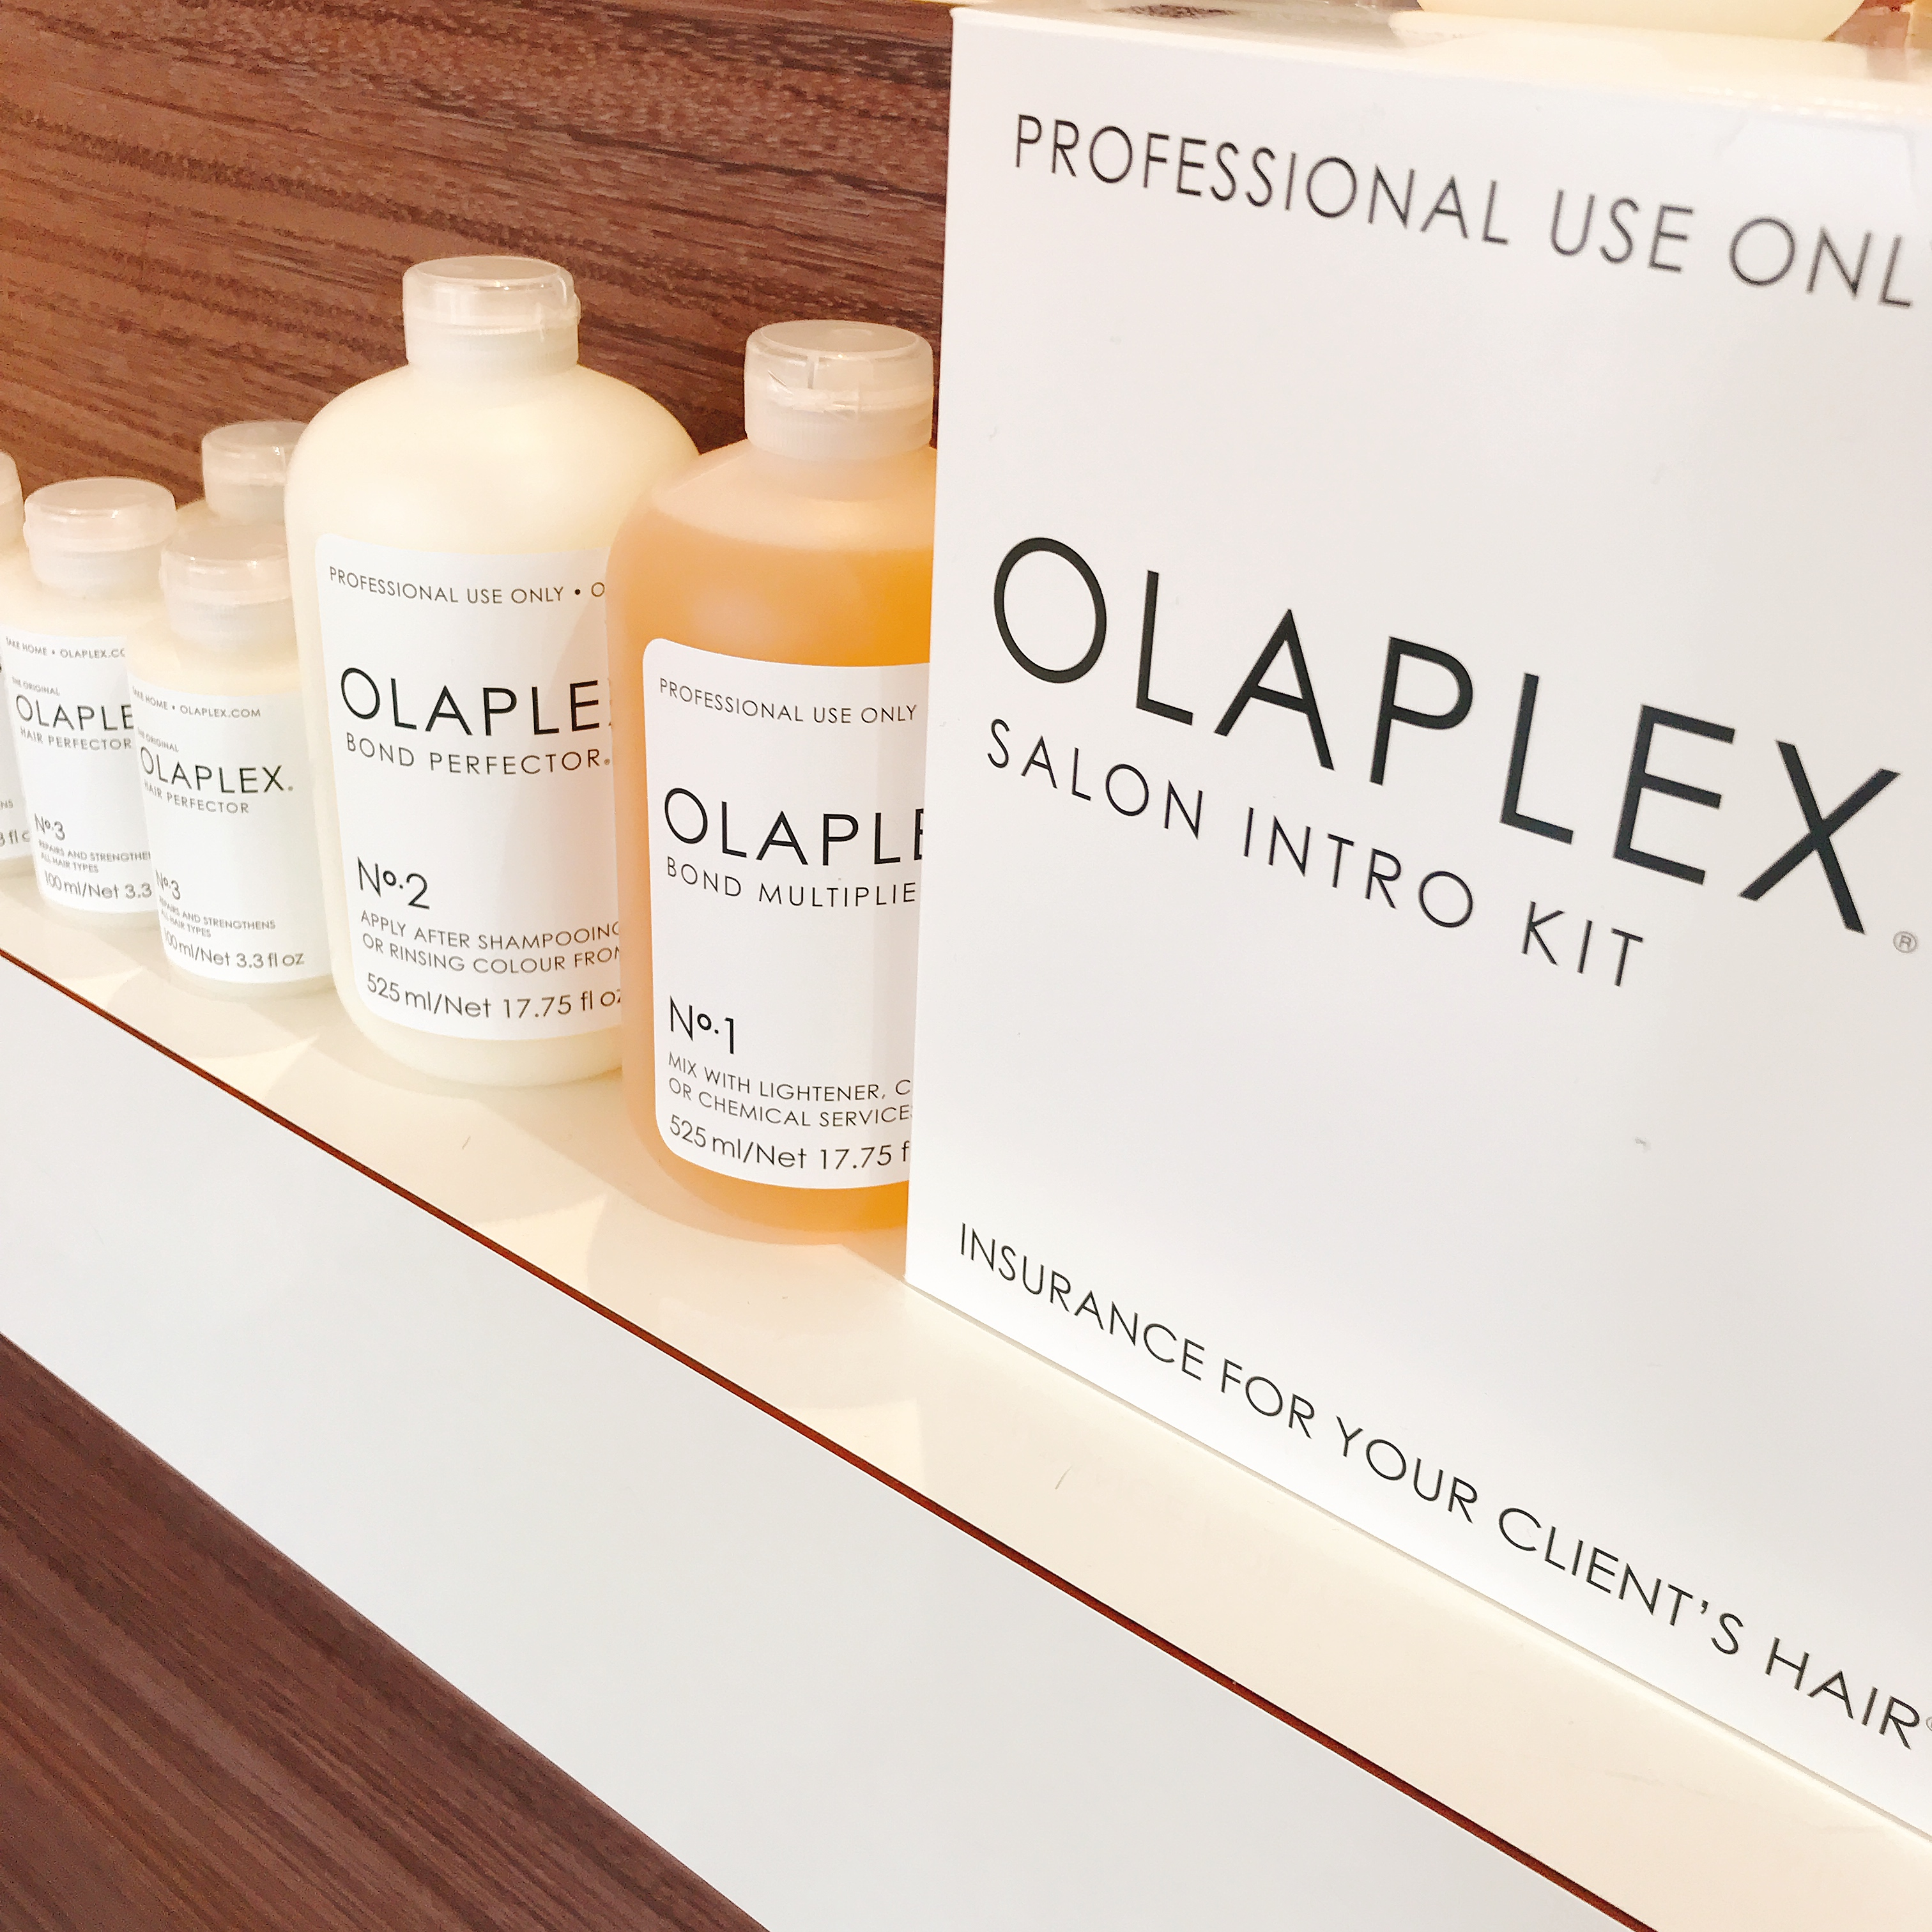 OLAPLEX professional use